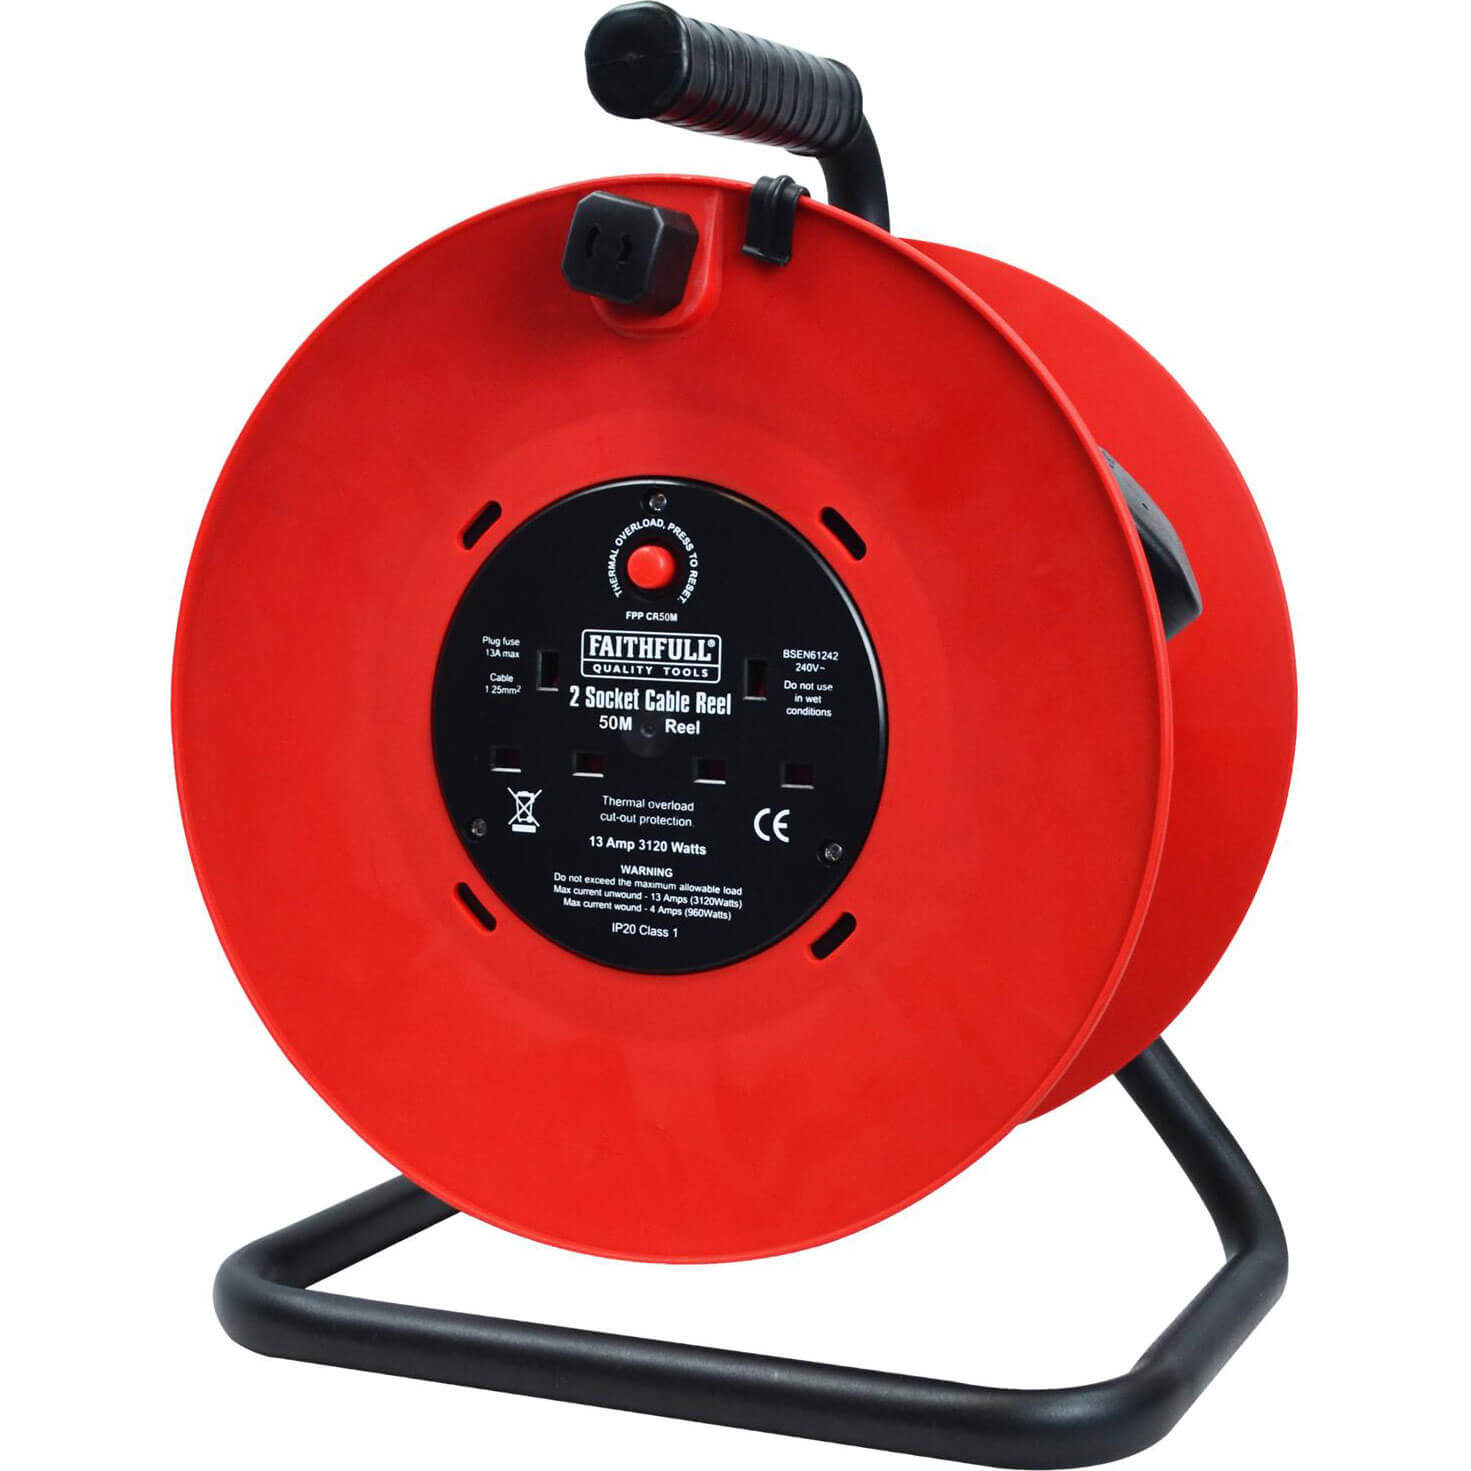 Faithfull 2 Socket Cable Extension Reel 240v 50m